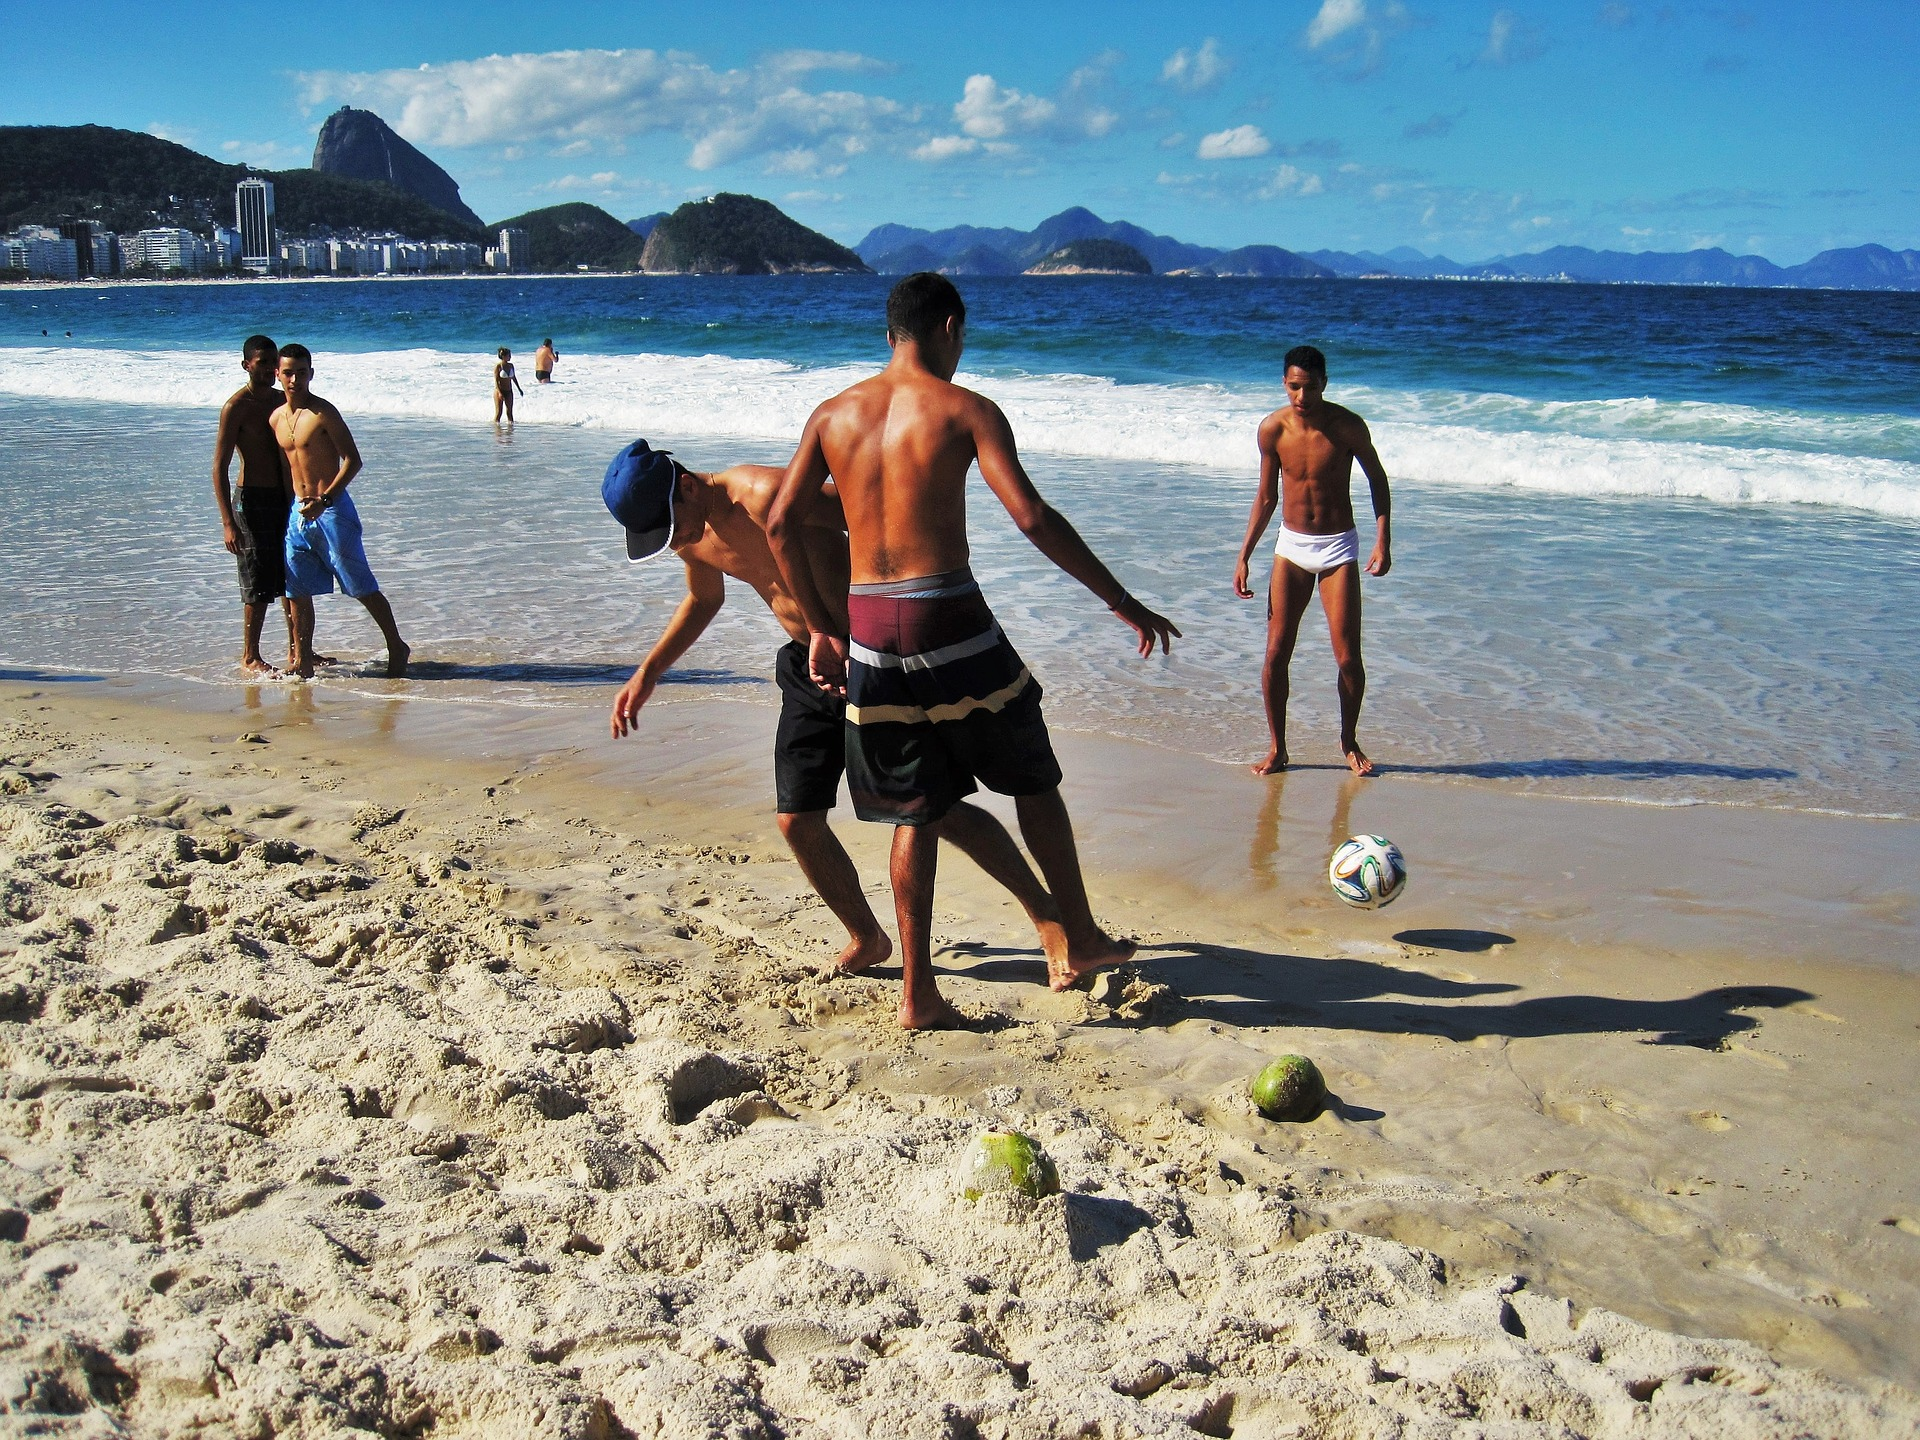 Beach ball brasilien reseinspiration